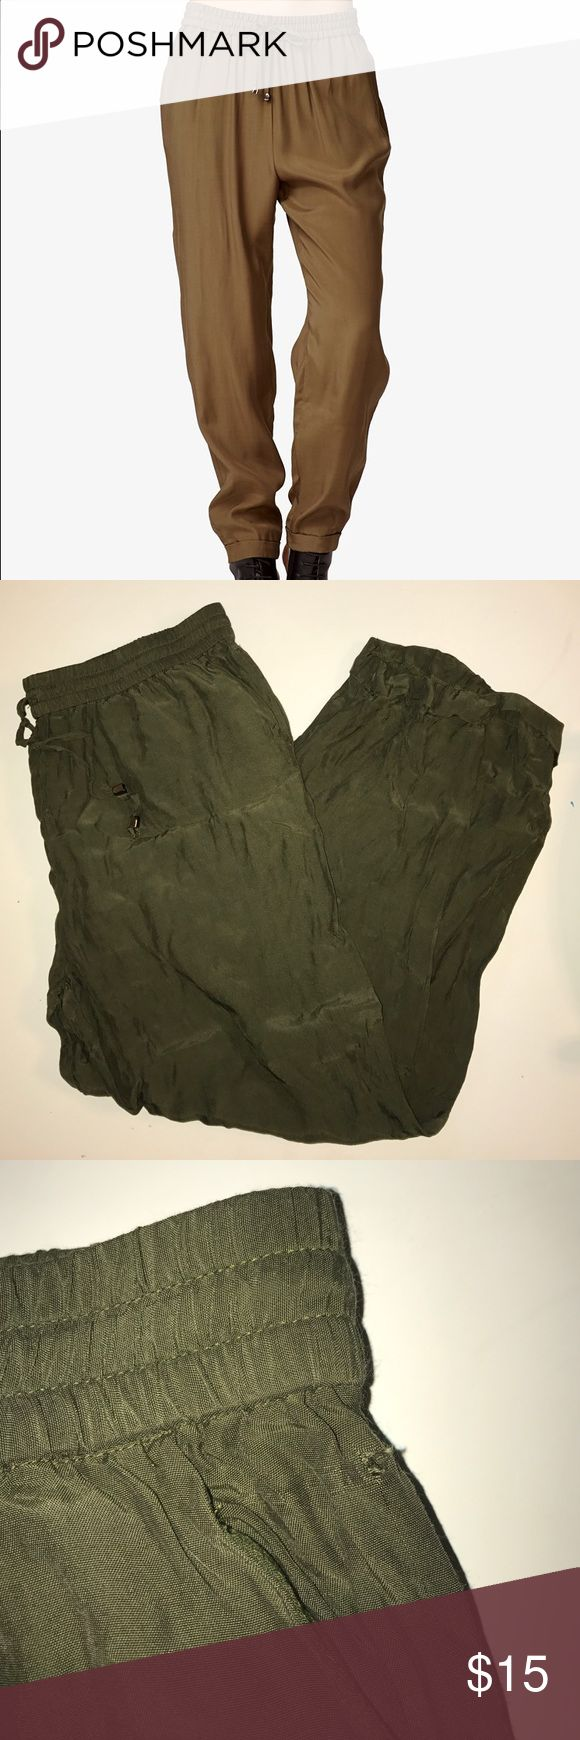 Olive Joggers Olive green joggers. They have a tiny hole near the waist band. (Pictured) Forever 21 Pants Track Pants & Joggers